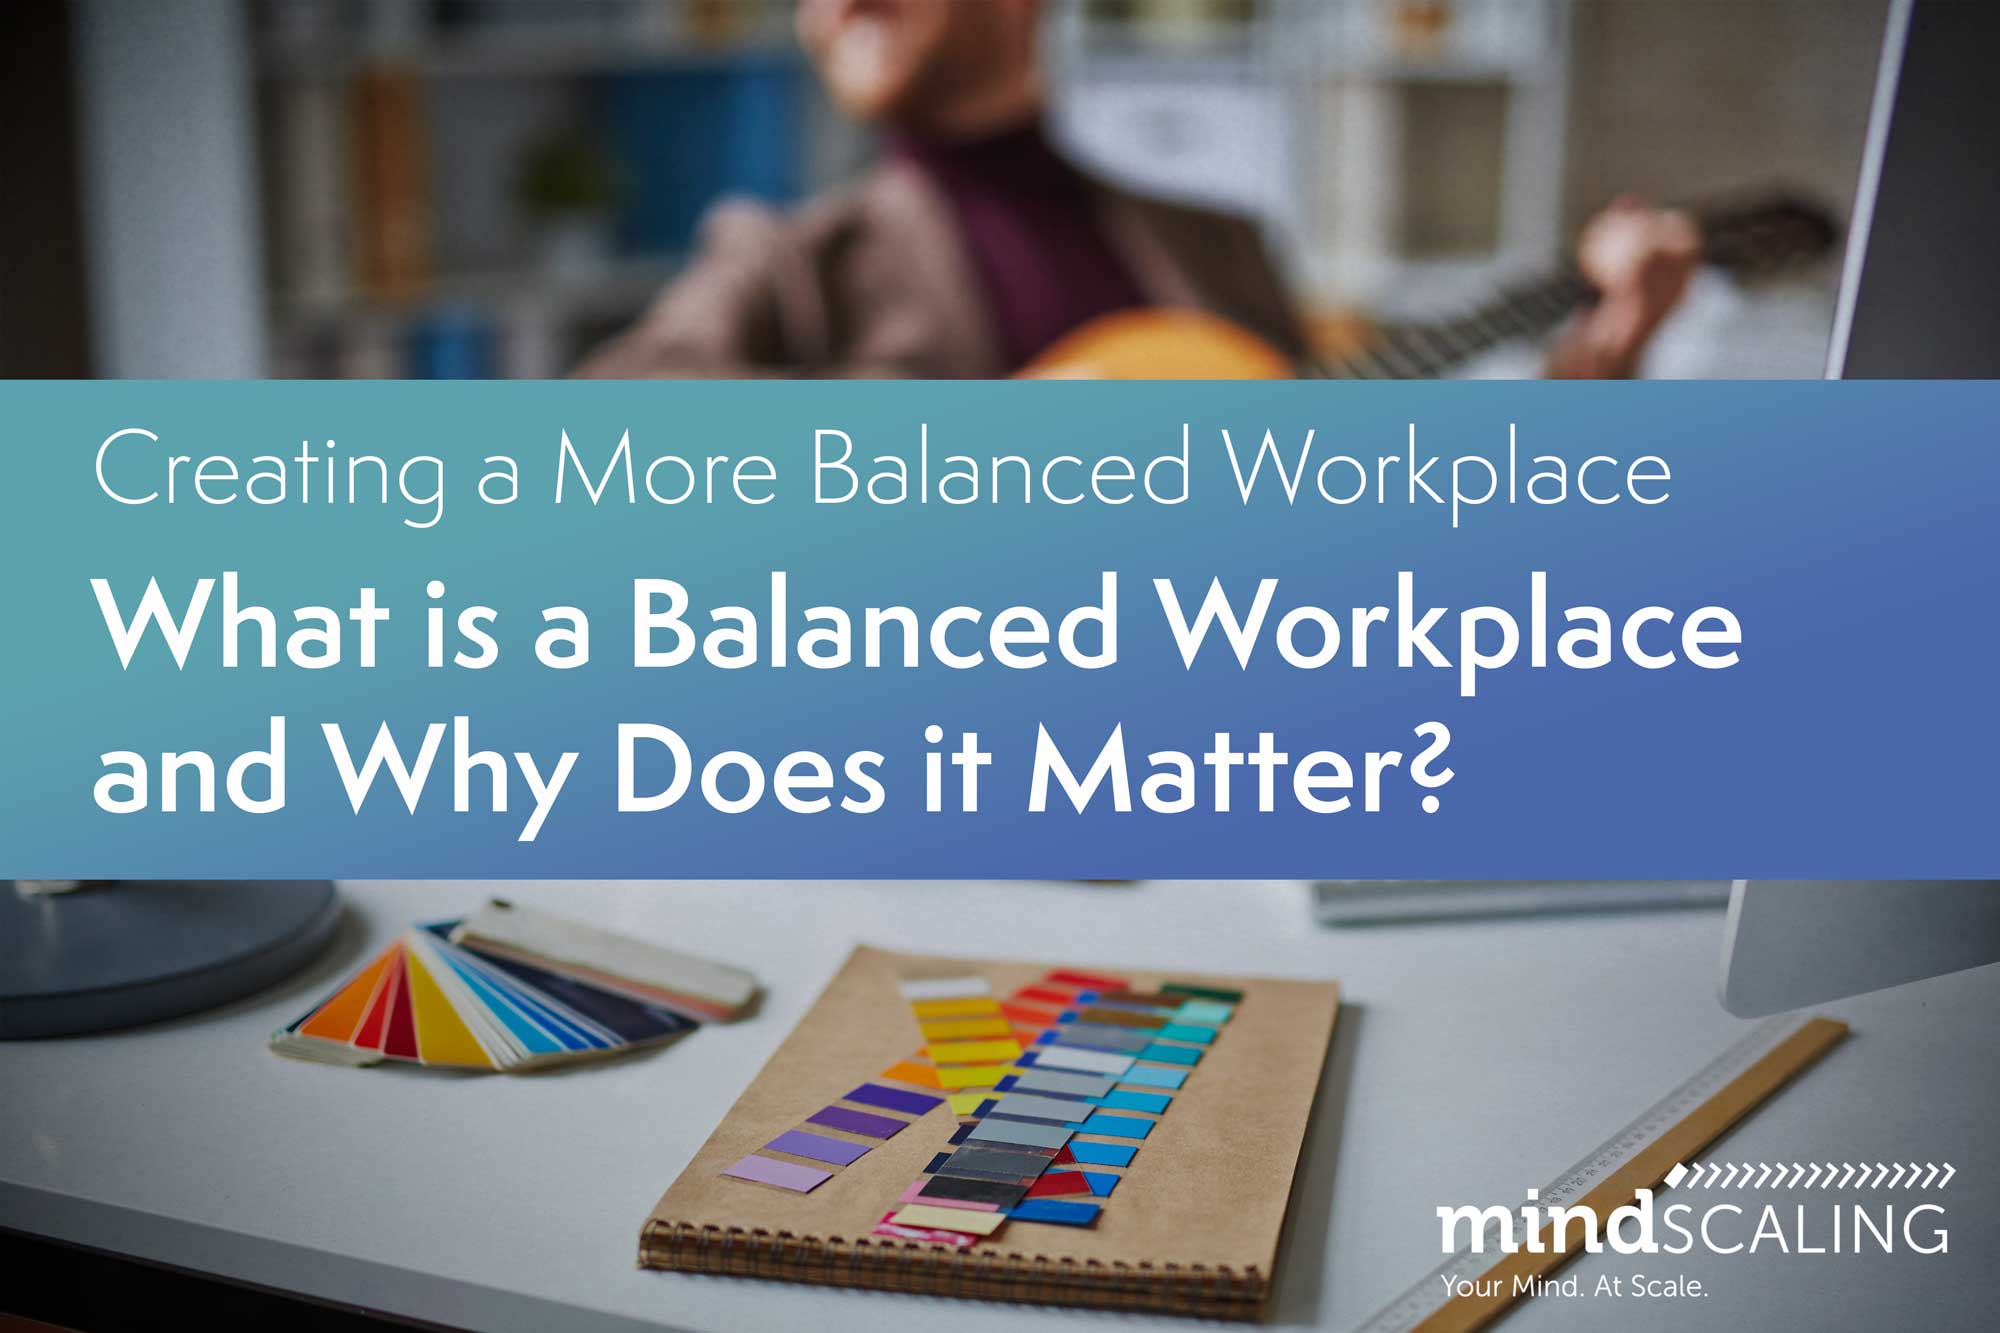 Creating a More Balanced Workplace: What is Work-Life Balance and Why Does it Matter?